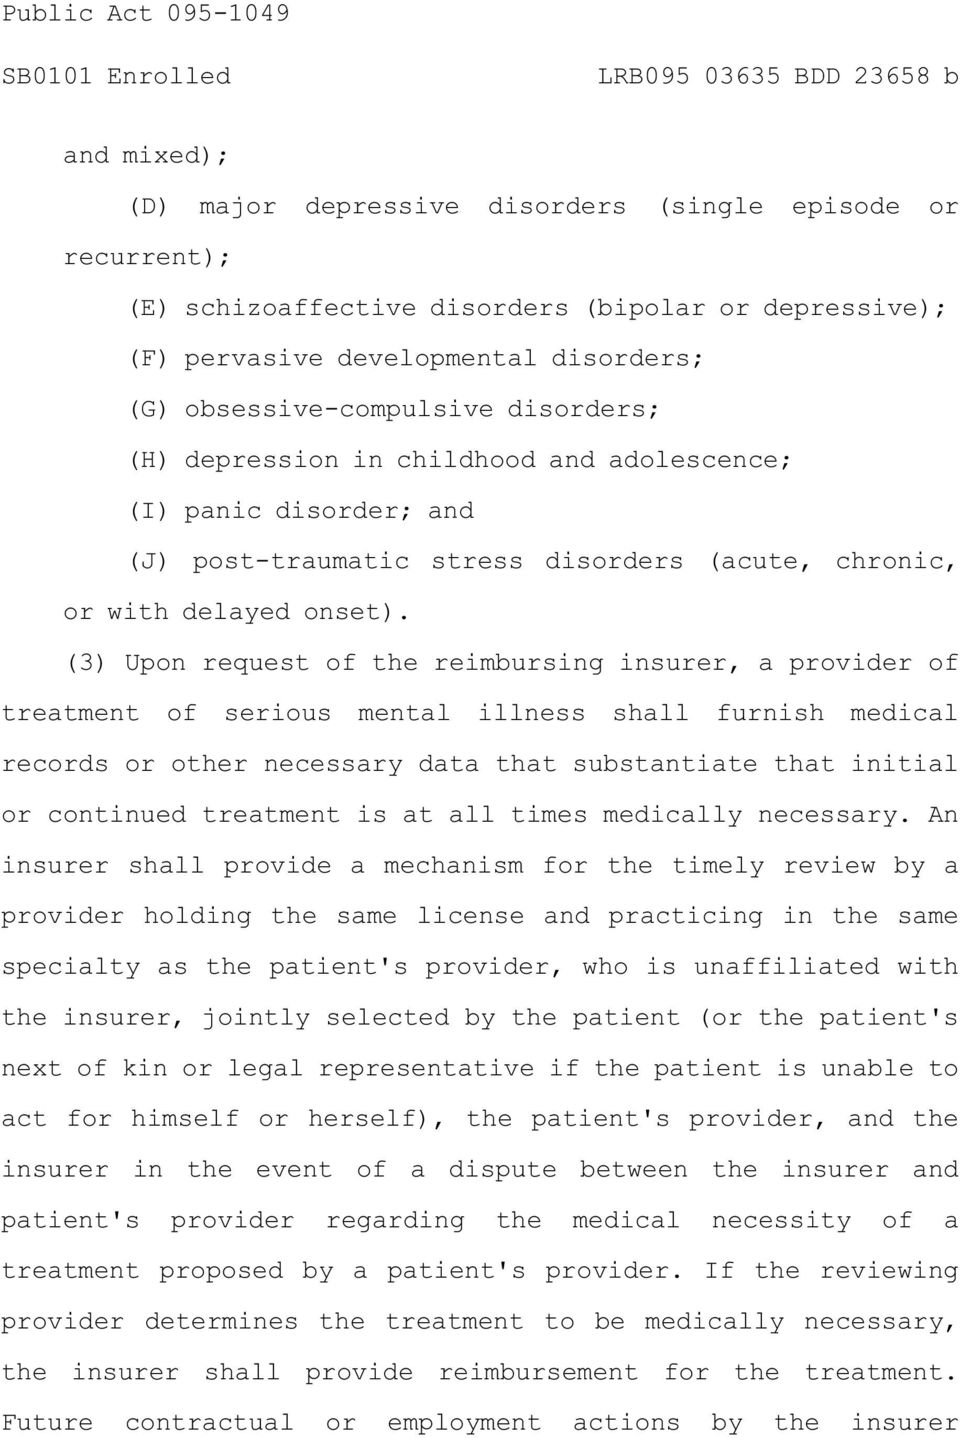 (3) Upon request of the reimbursing insurer, a provider of treatment of serious mental illness shall furnish medical records or other necessary data that substantiate that initial or continued